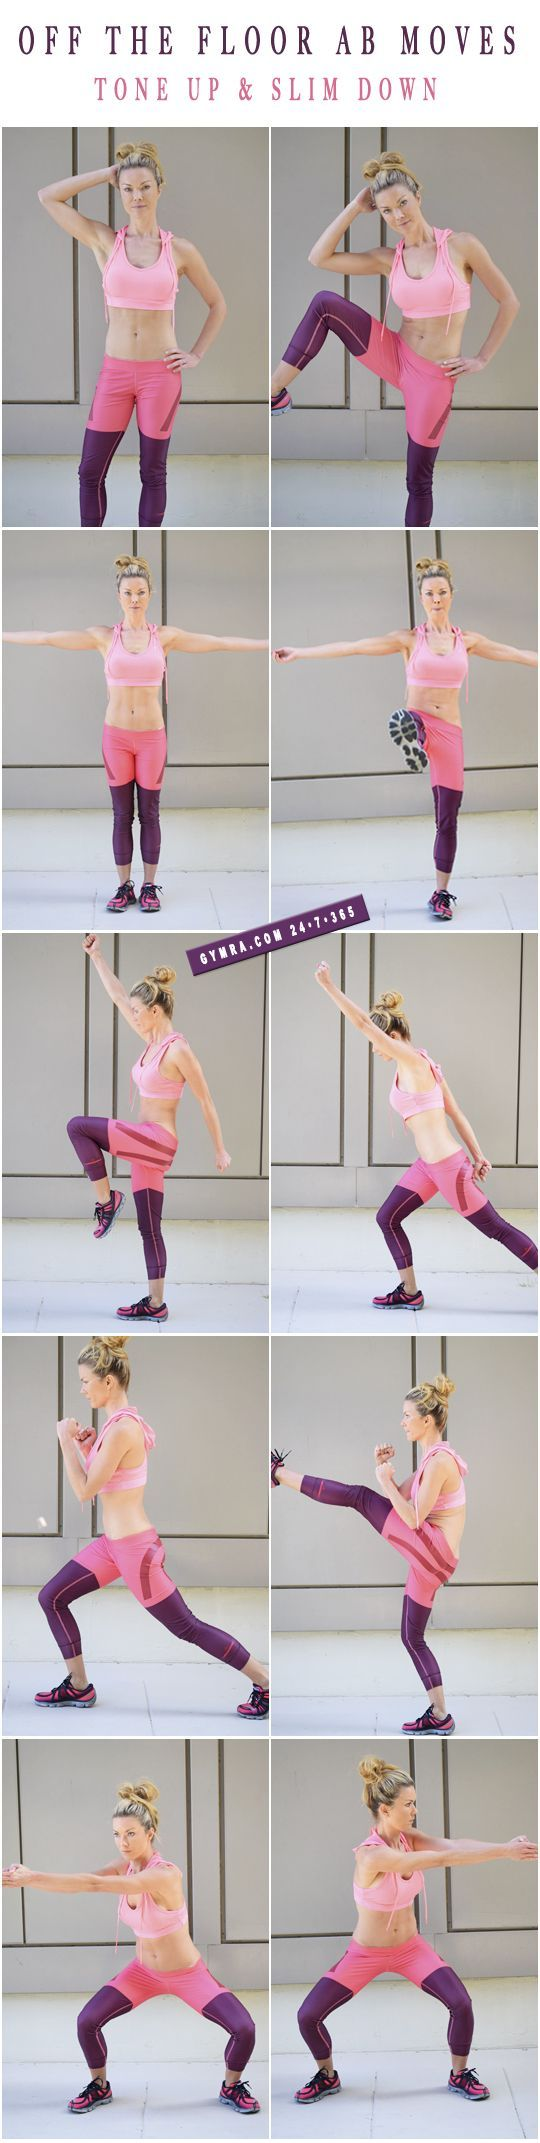 Standing Ab Moves.. great workout without crunches!